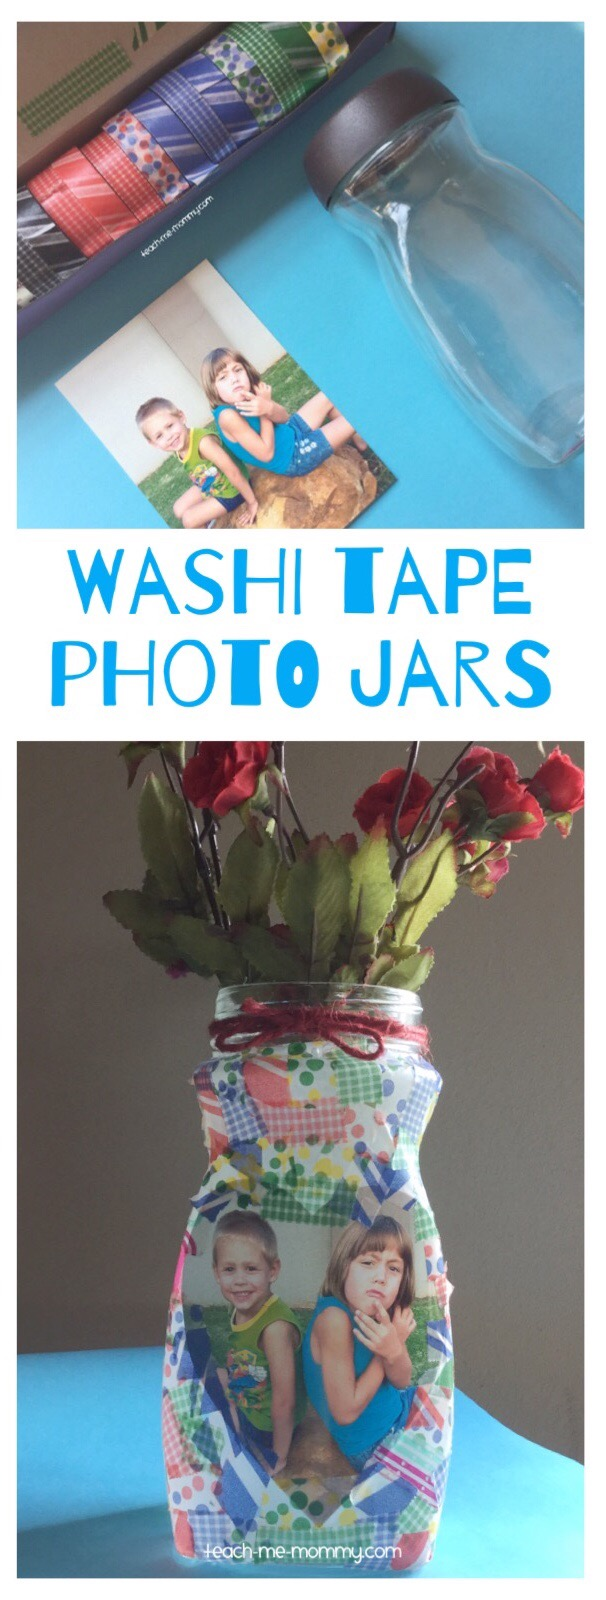 washi tape photo jar